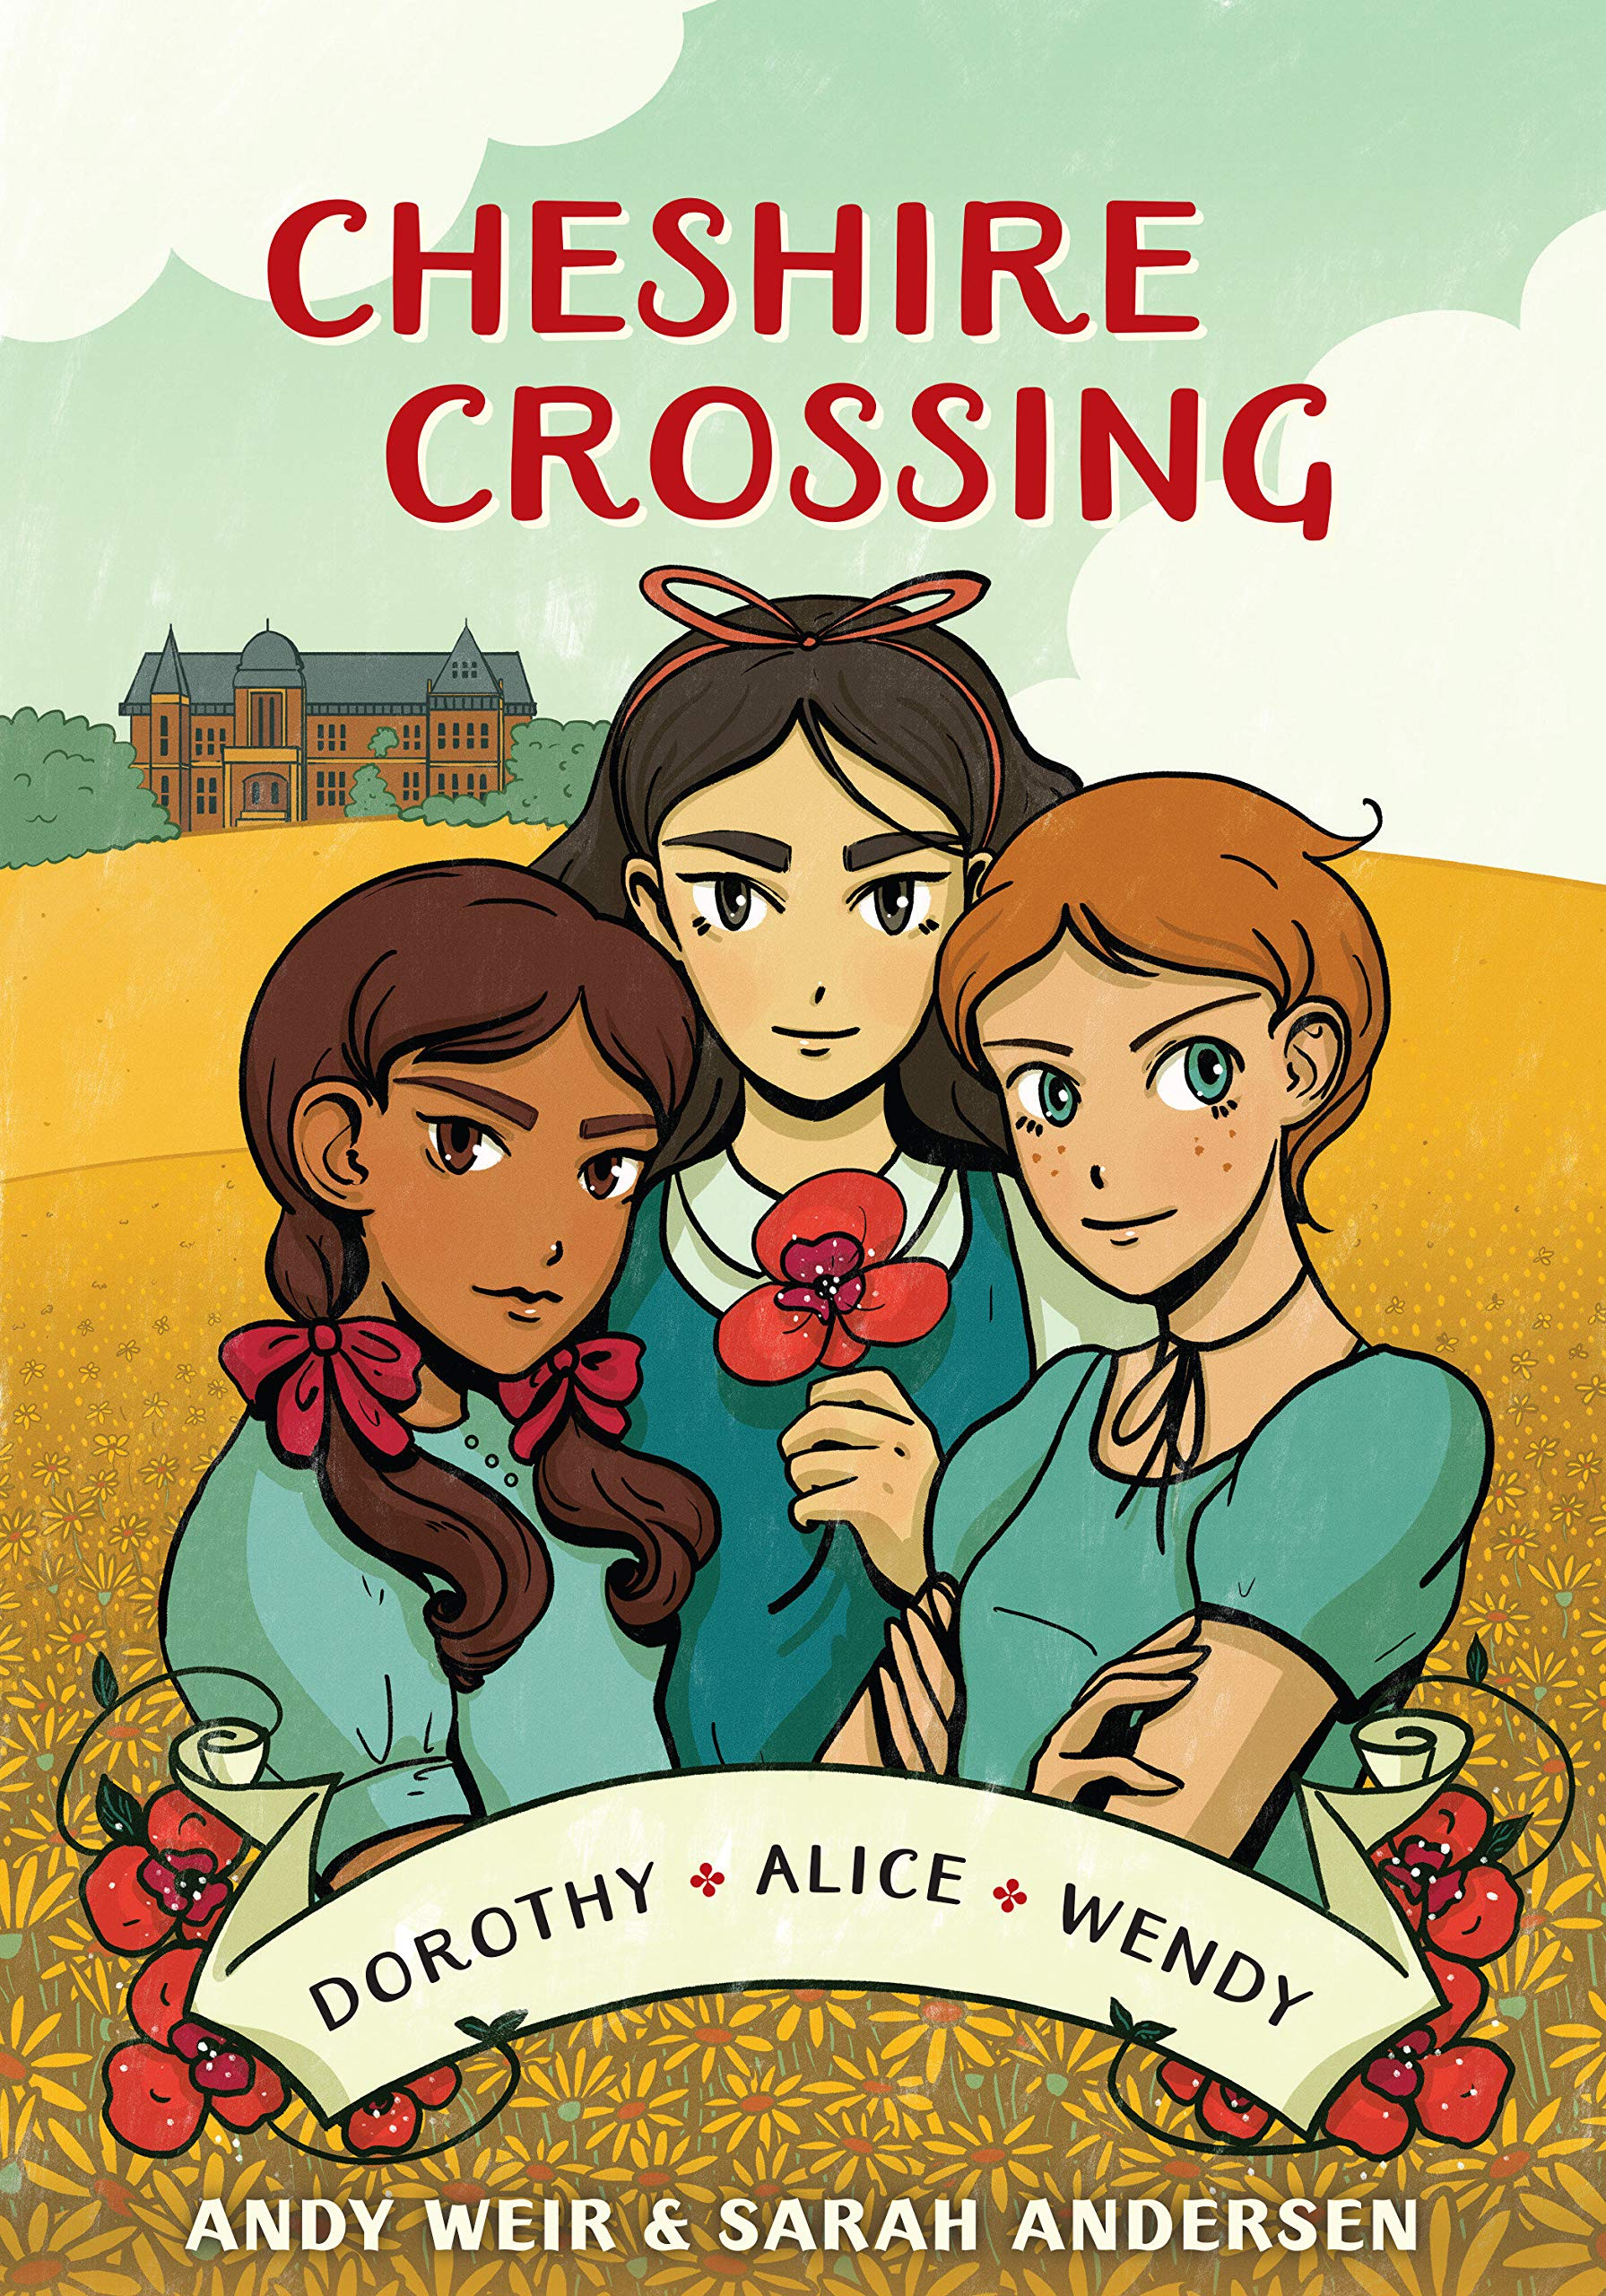 Amazon.com: Cheshire Crossing: [A Graphic Novel] (9780399582073): Weir, Andy, Andersen, Sarah: Books